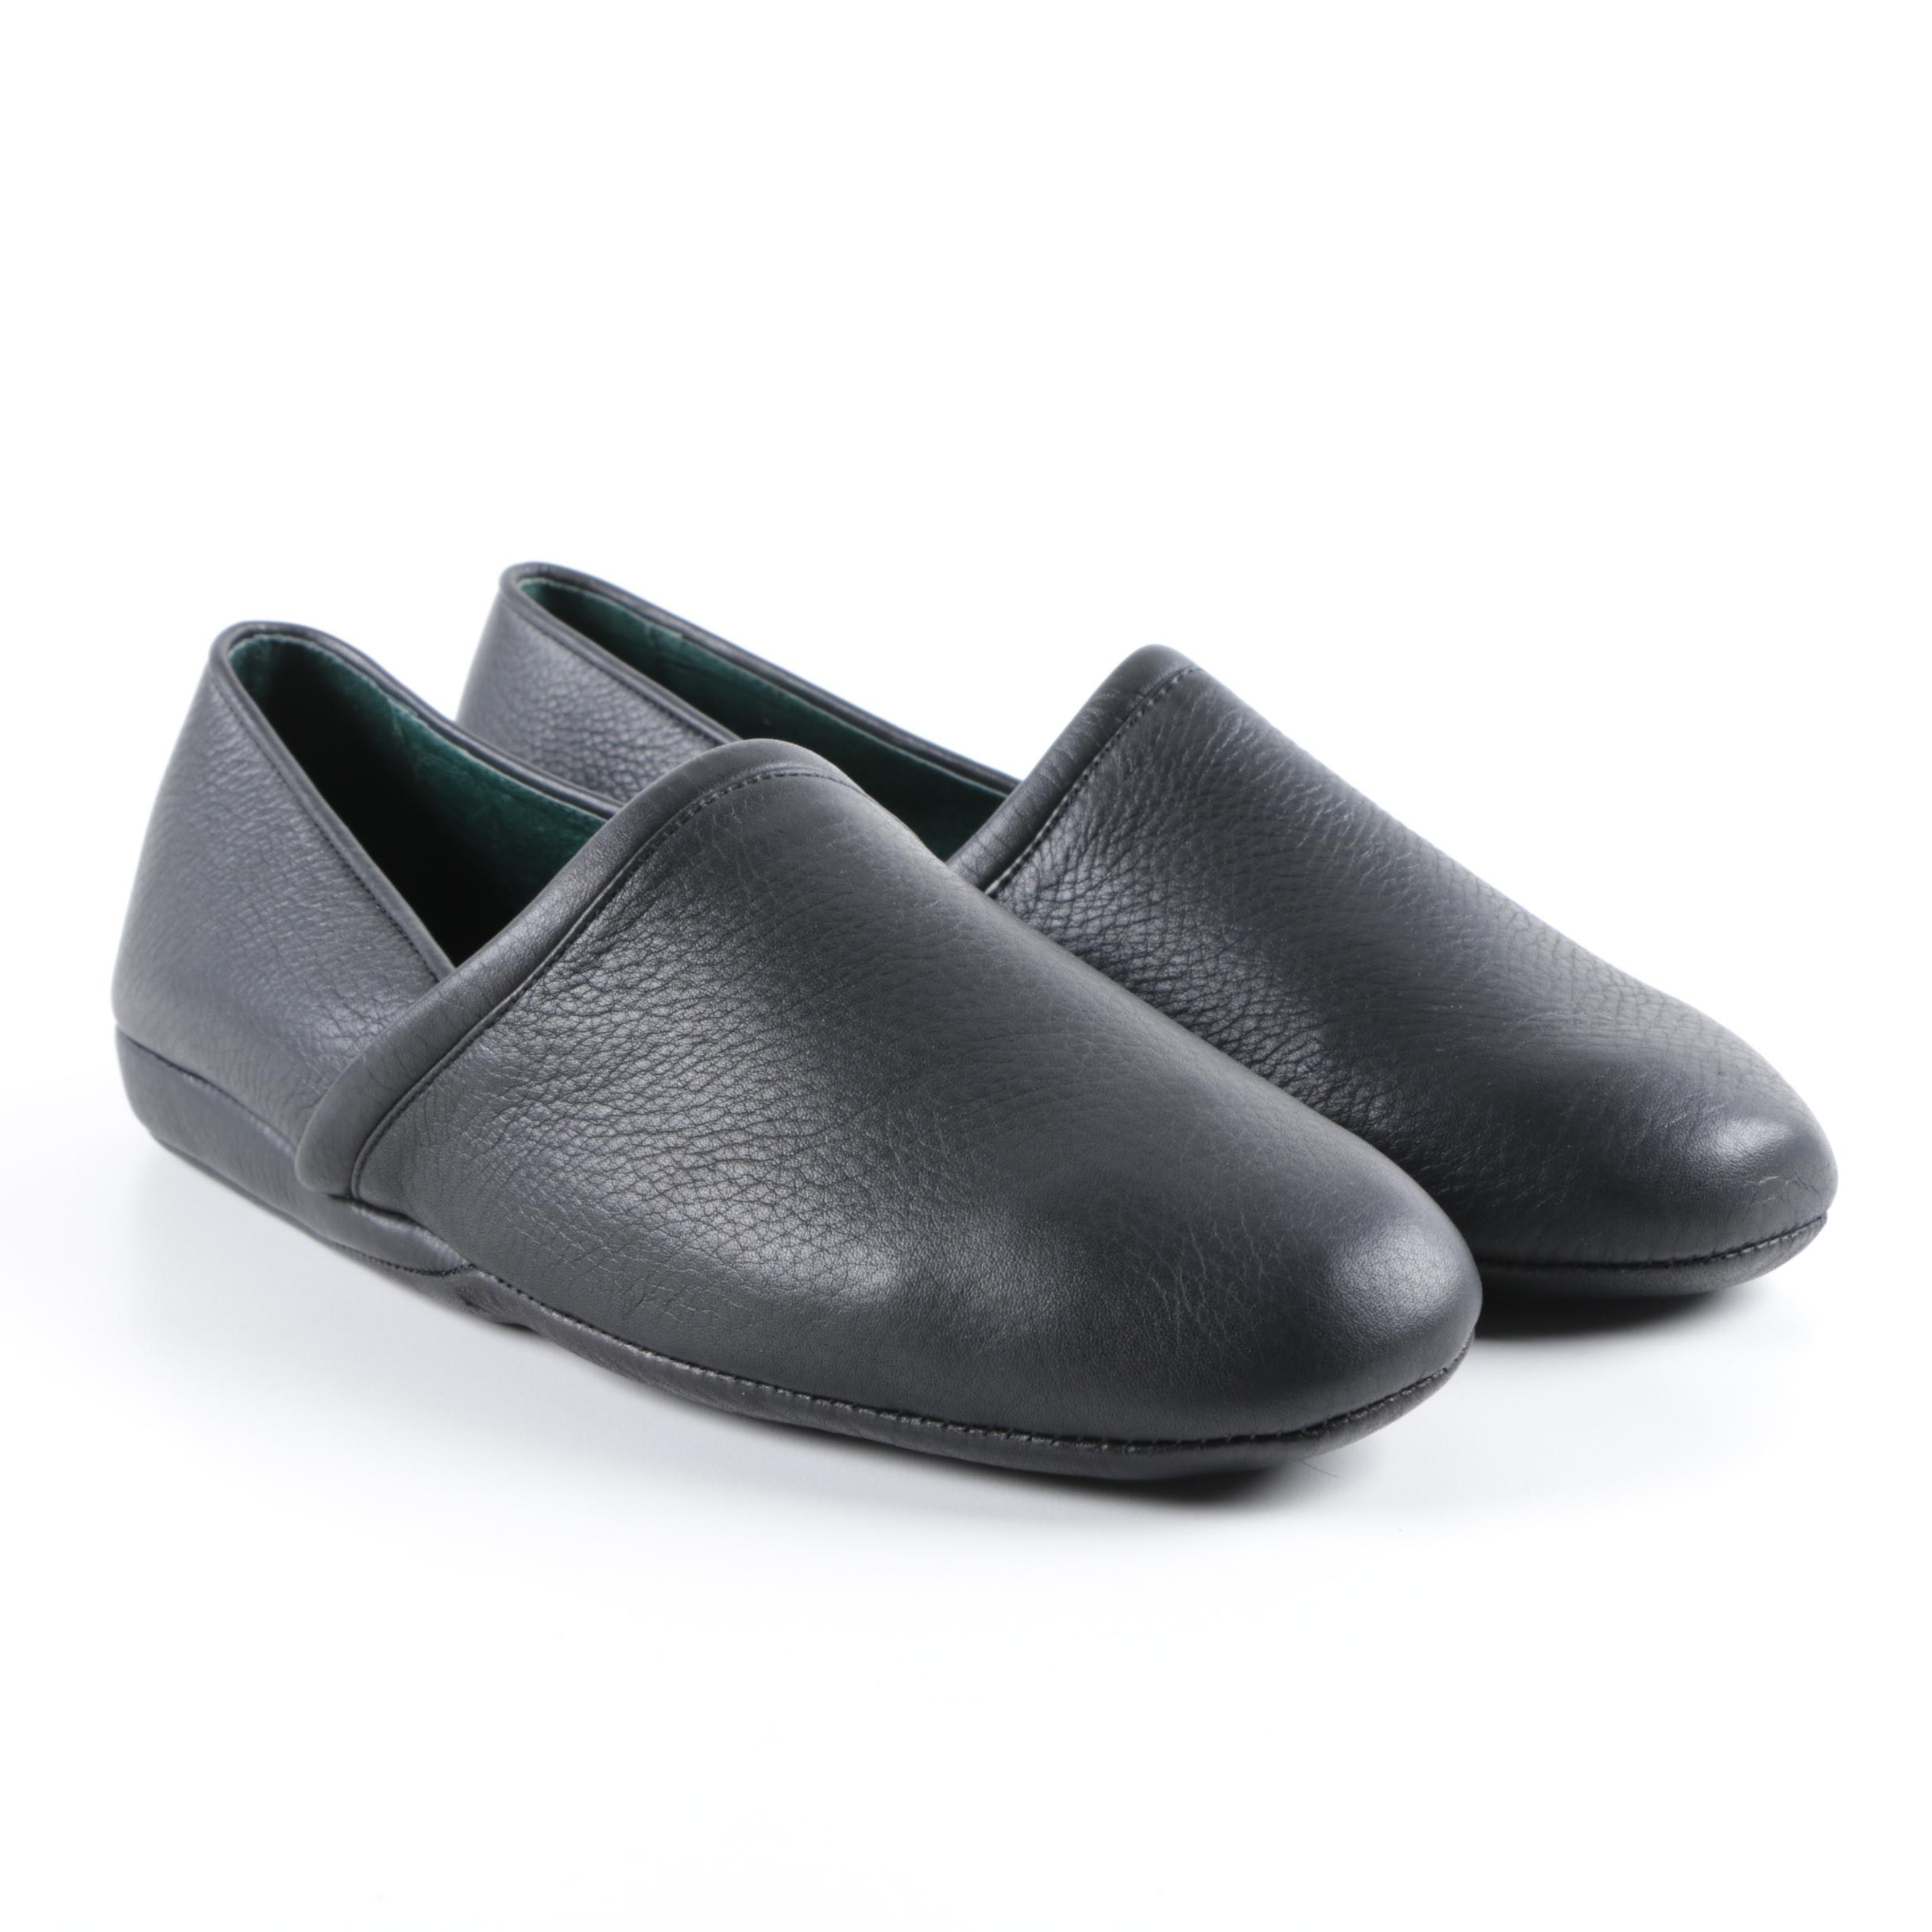 Men's L.B. Evans Black Leather Slippers